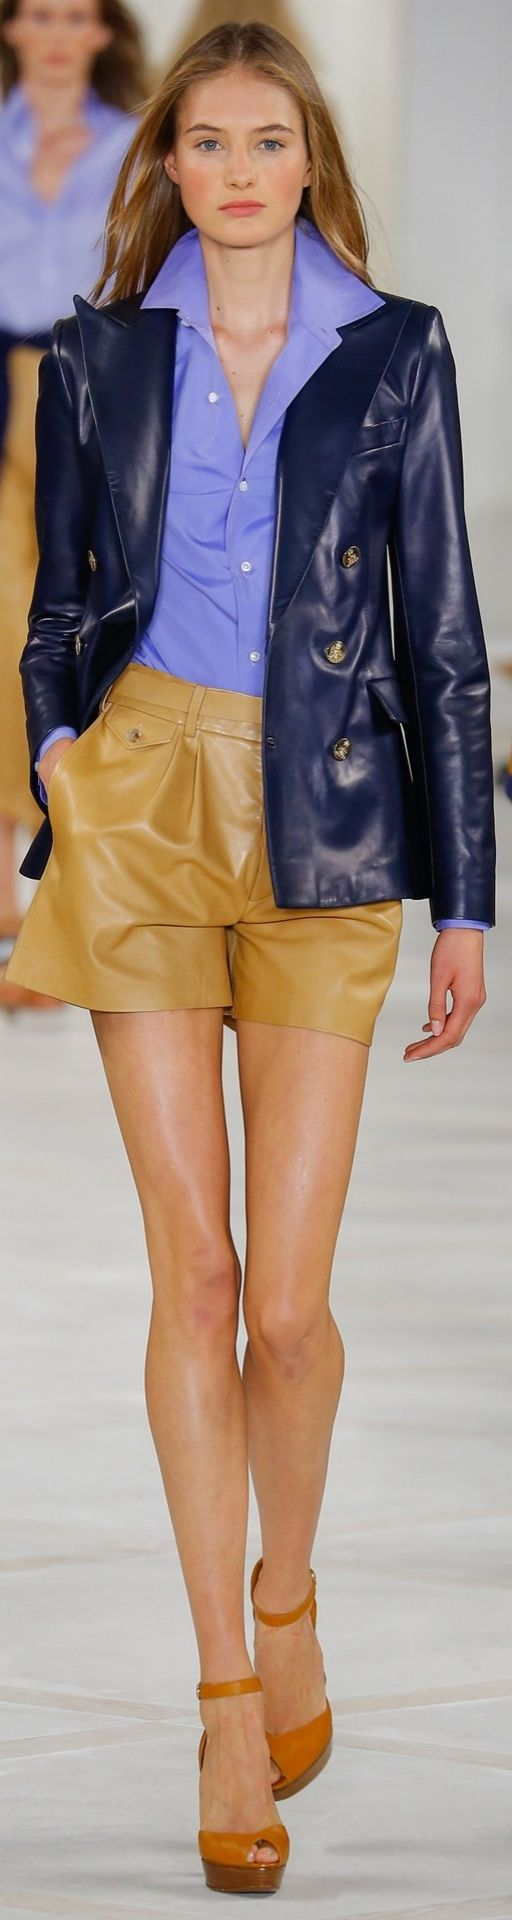 Ralph Lauren Collection Spring 2016: A navy blazer crafted from the finest leather elevates a classically chic ensemble into the realm of true luxury